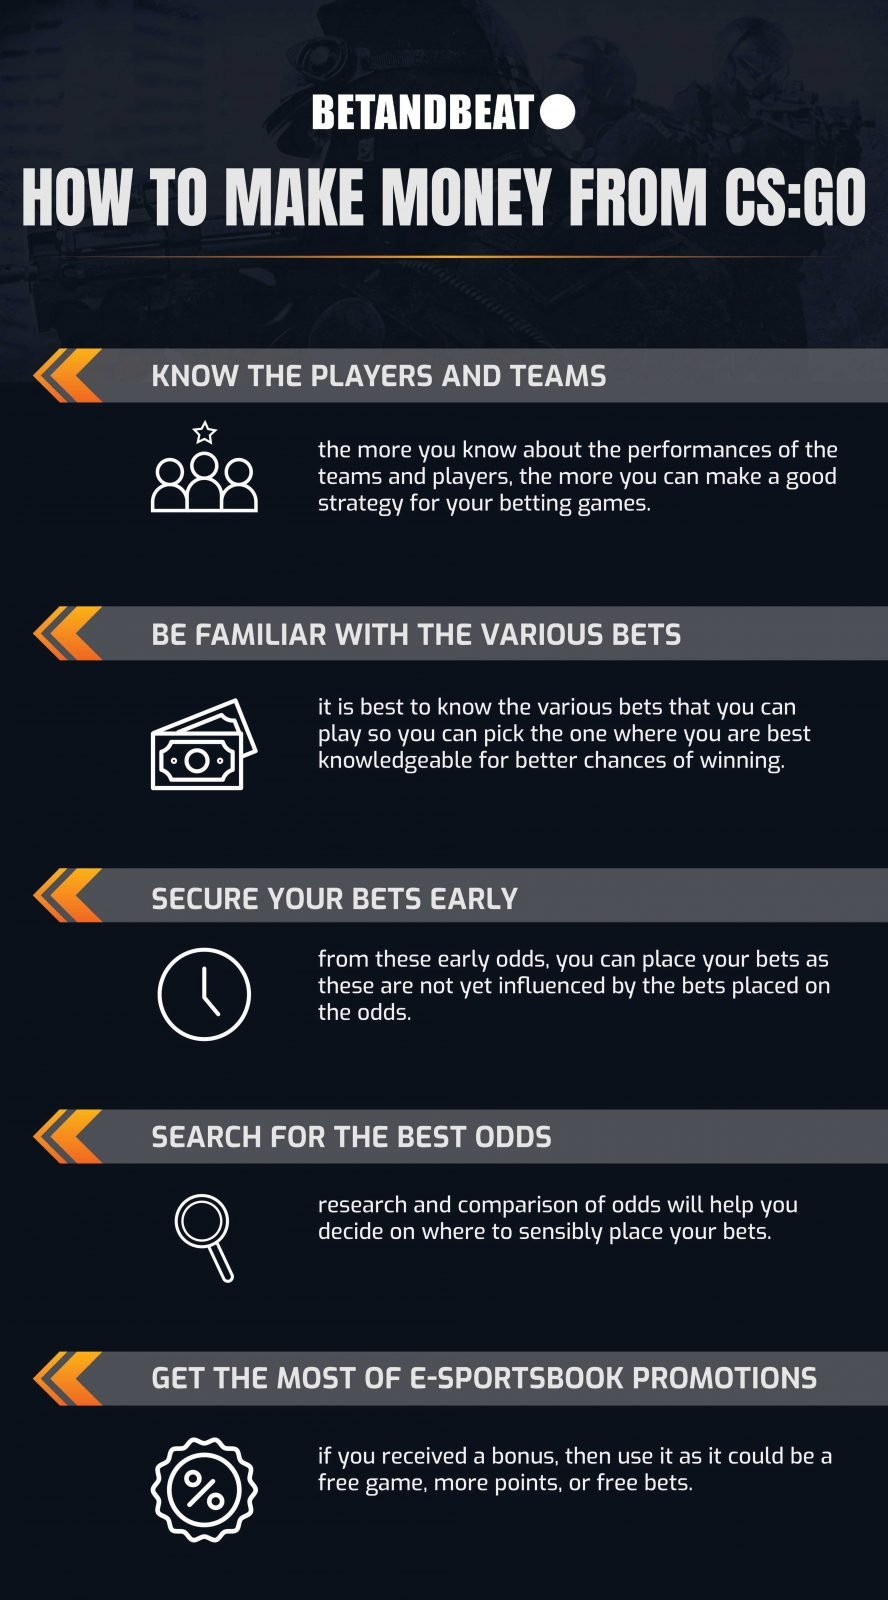 make money betting on Counter-Strike: Global Offensive